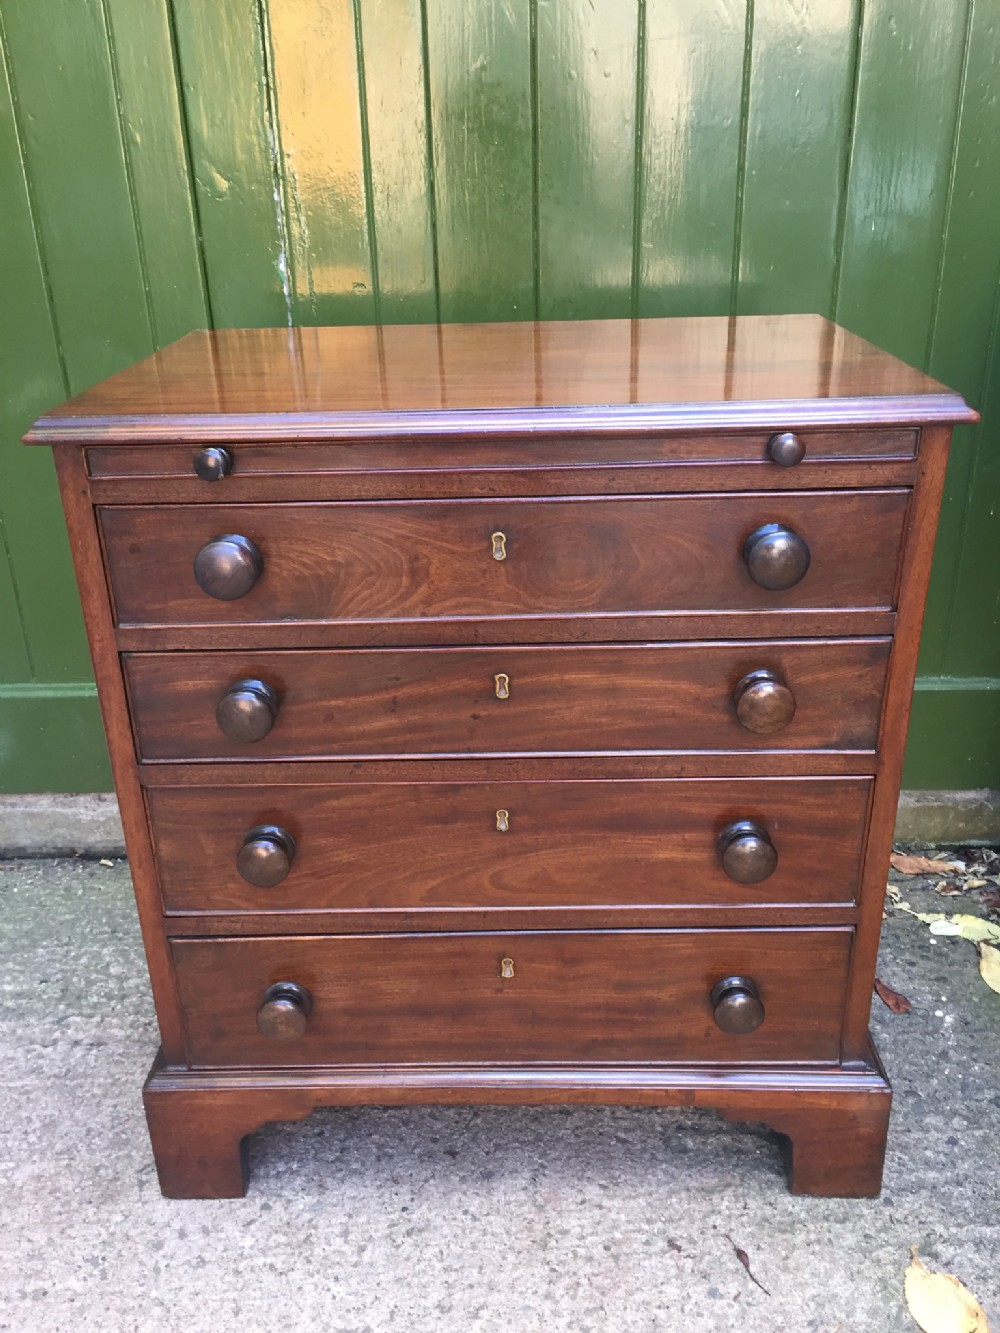 neat c19th mahogany chest of drawers of late c18th design